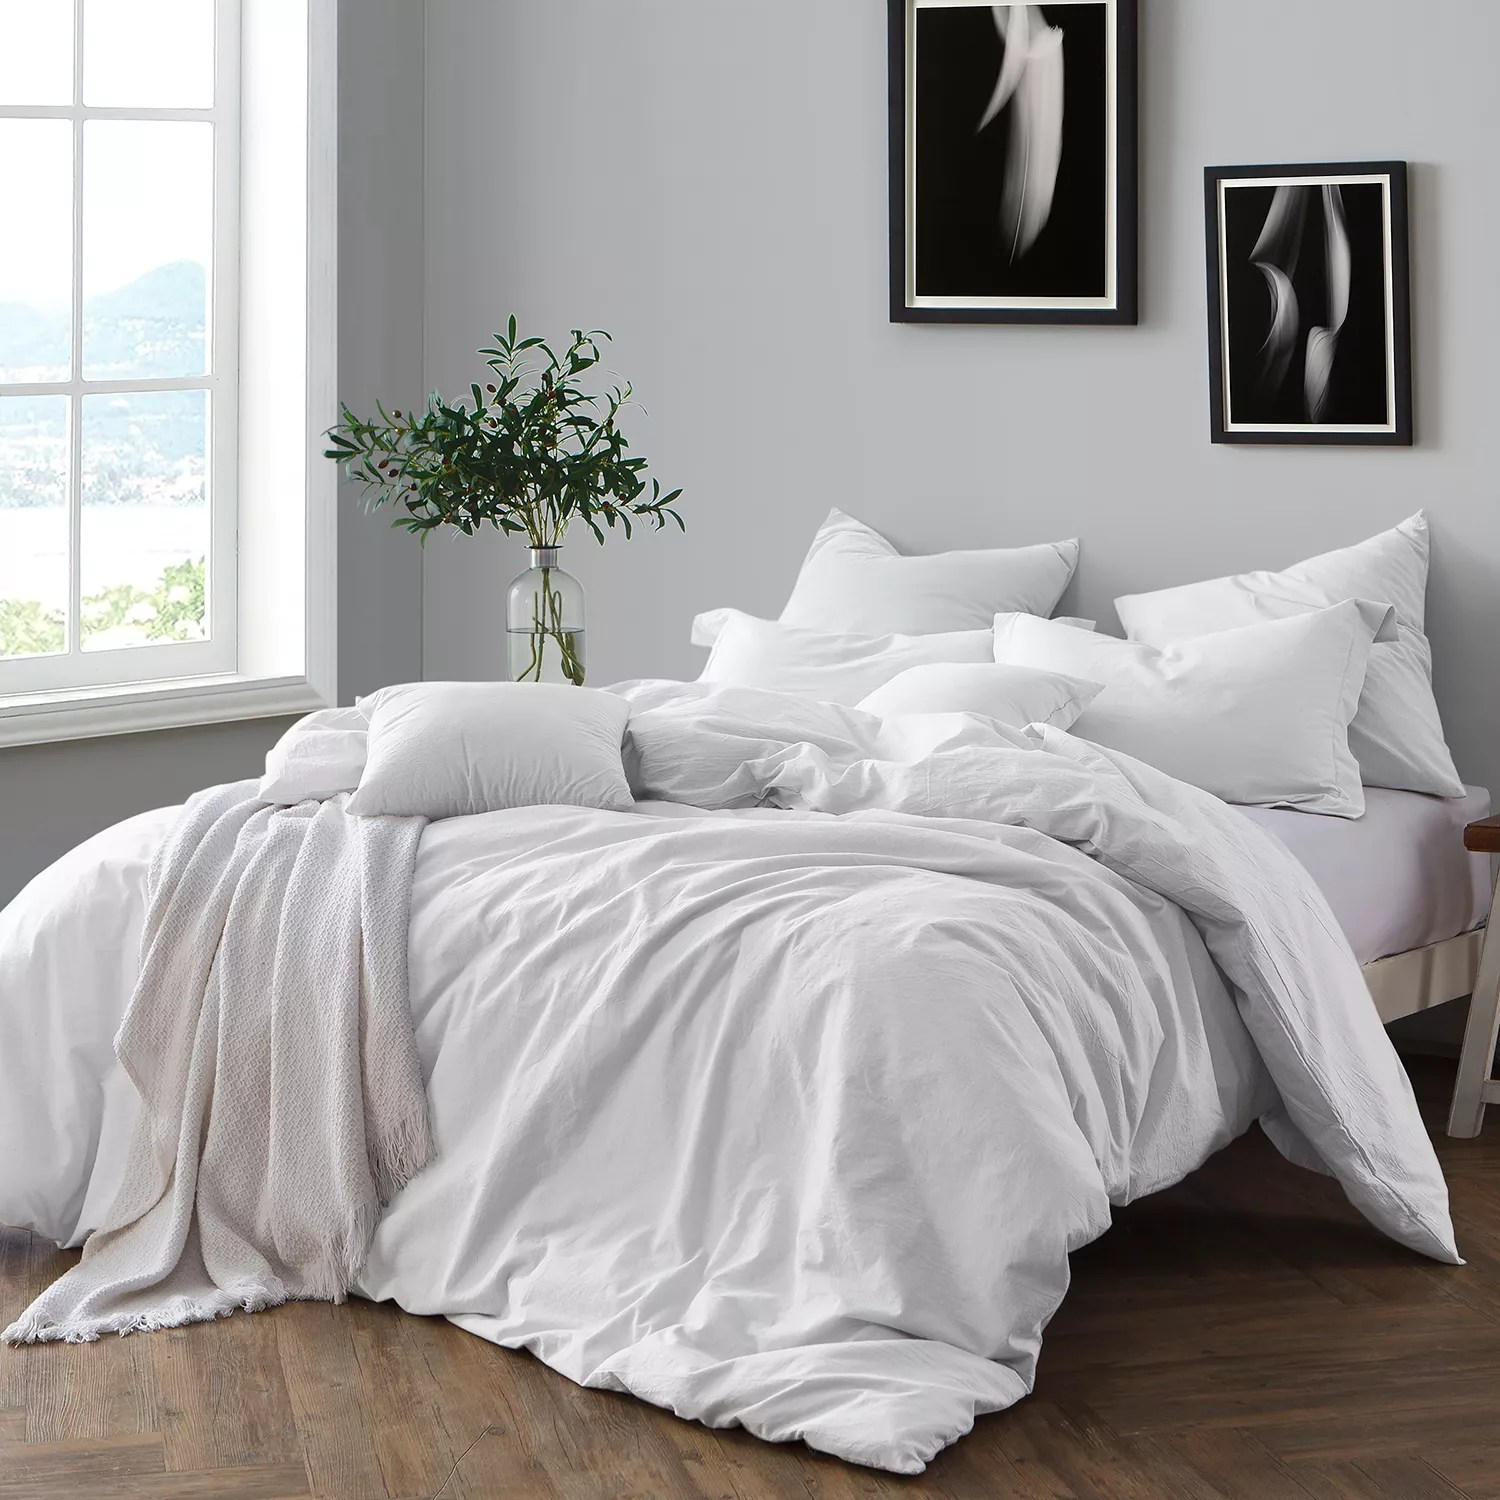 twin duvet covers bedding